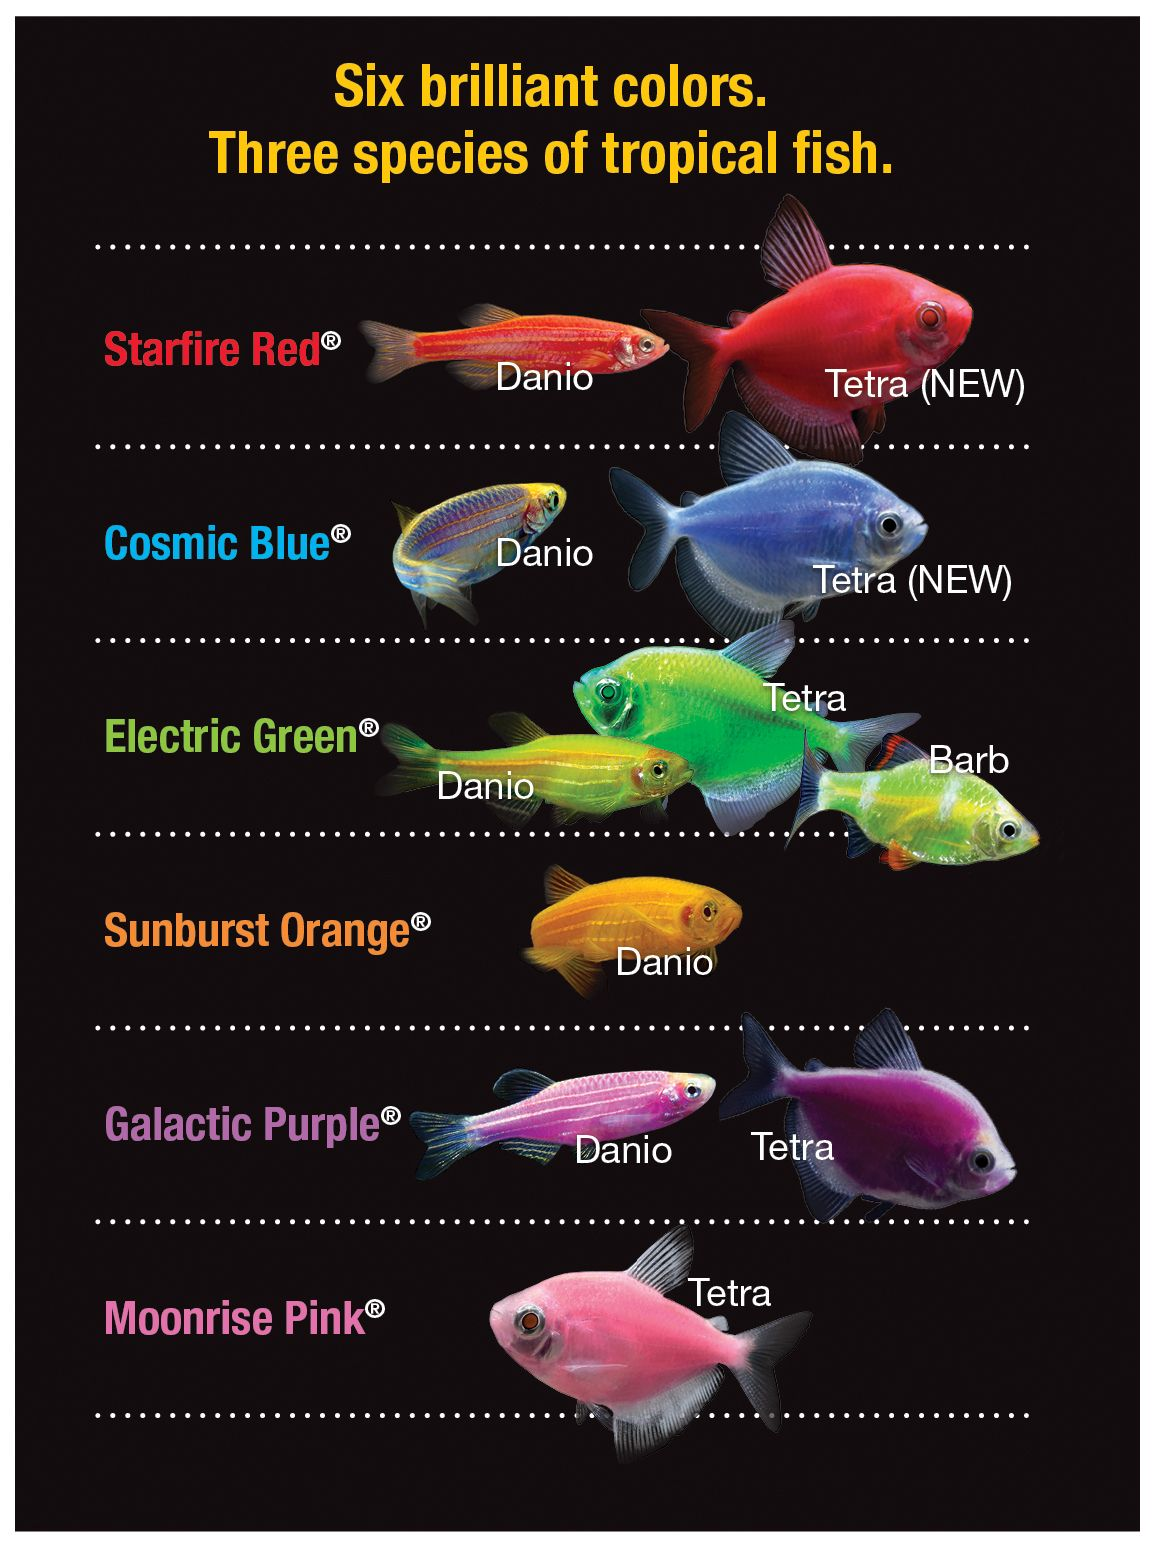 Glofishchart 1155 1545 aquarium related for Tetra fish tanks